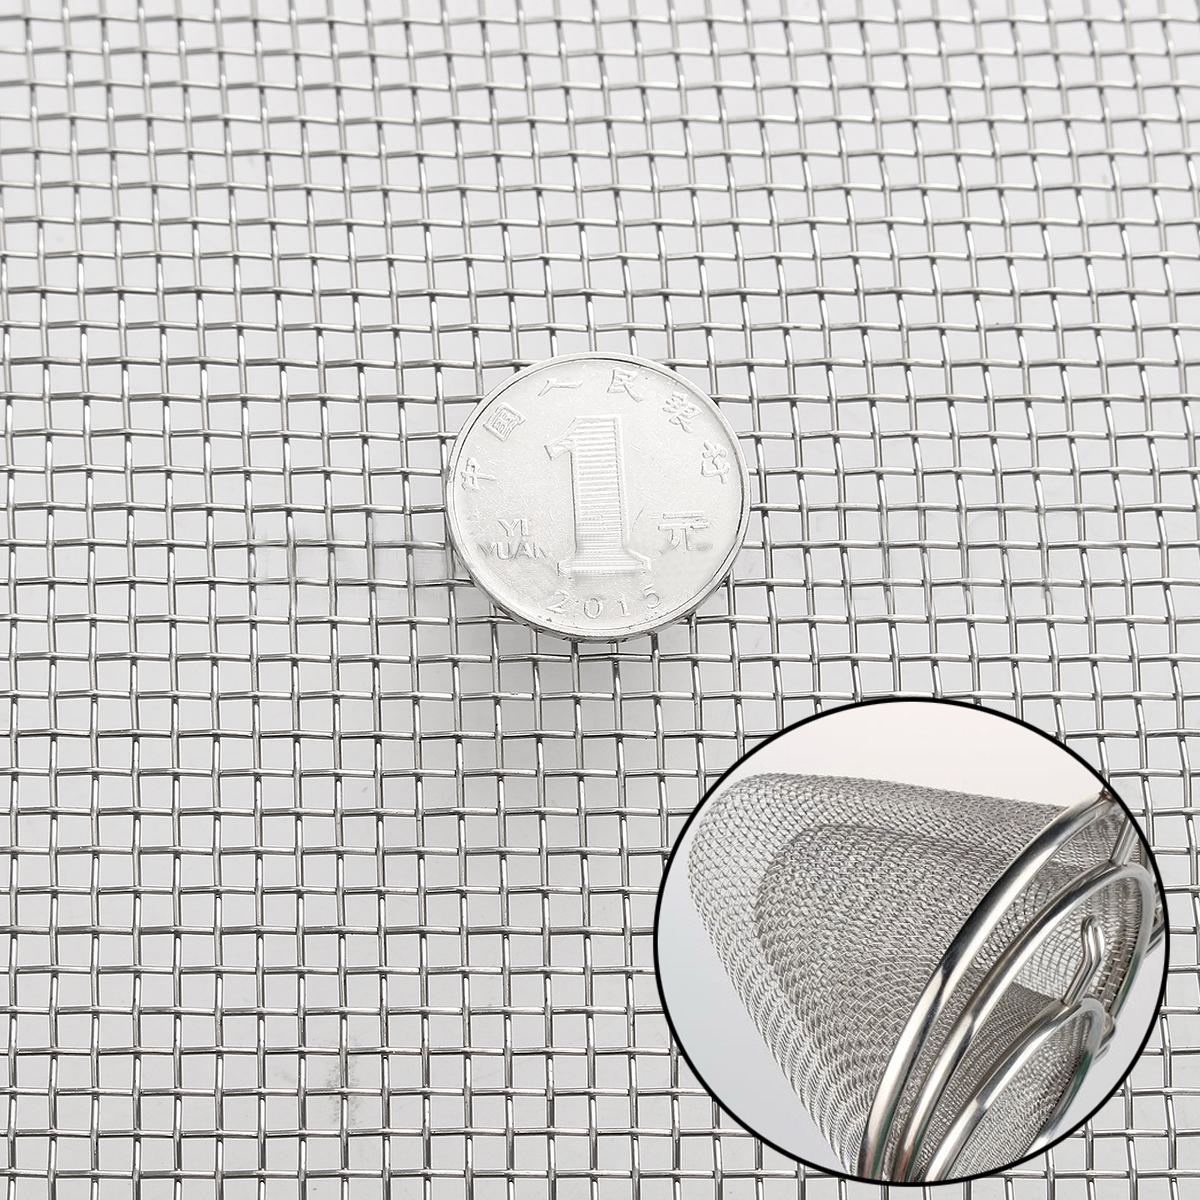 DWZ 1pc New 30cm * 60cm 304 Stainless Steel Mesh #8 .035 Wire Cloth Screen 16 * 24 1 roll stainless steel woven wire cloth screen filter 120 mesh 125 micron 30x90cm with corrosion resistance